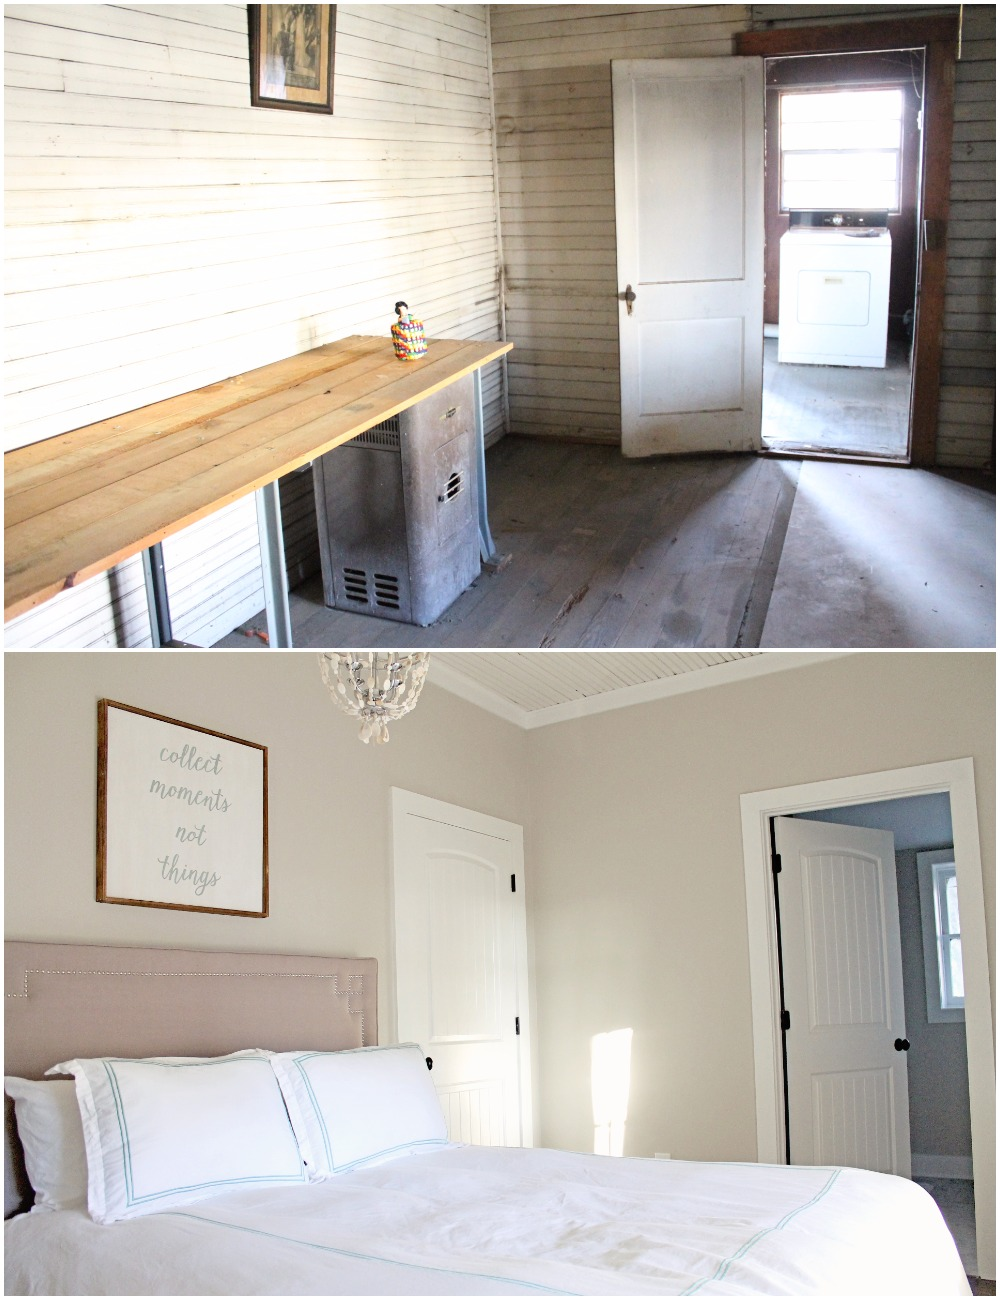 Elizabeth Burns Design  Budget-Friendly Fixer Upper Farmhouse Before and After House Flip - DIY Guest Bedroom with Aqua Accents - Sherwin Williams Agreeable Gray (1).jpg